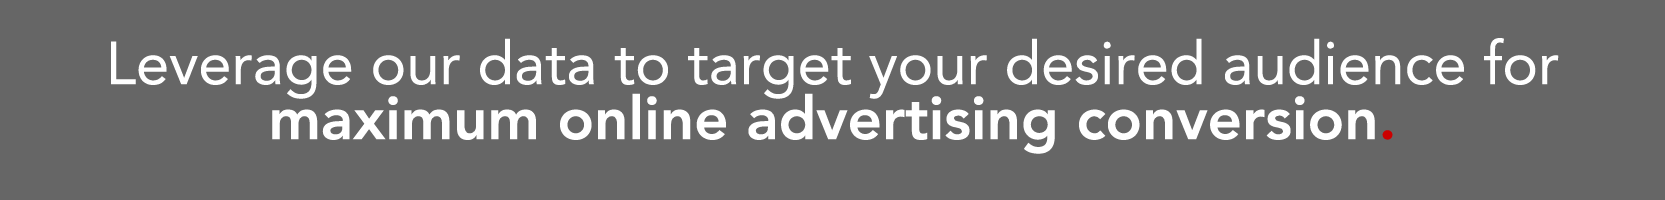 online advertising midpoint